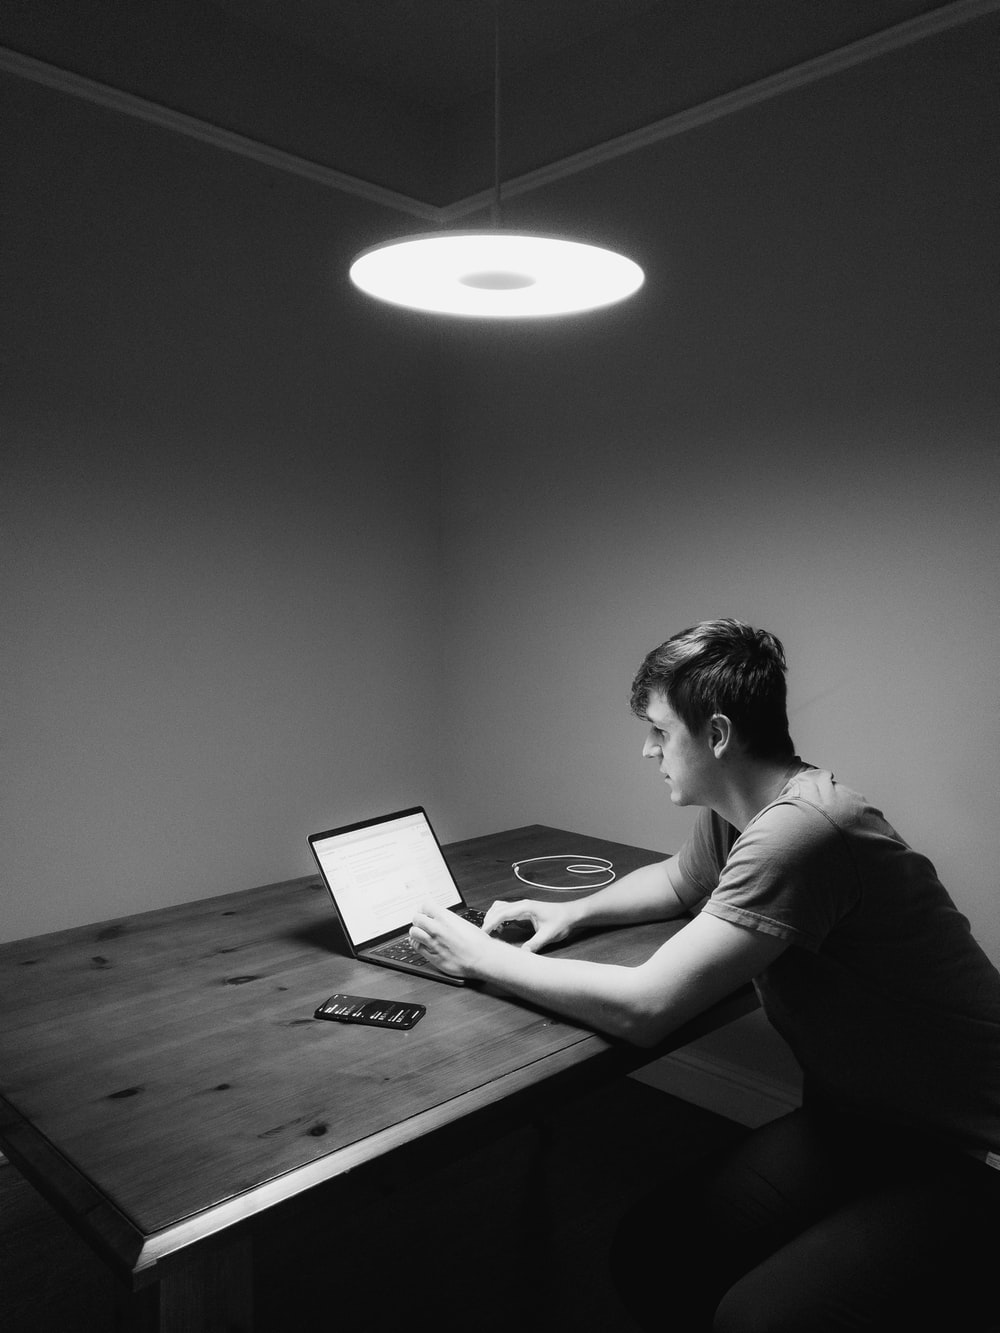 grayscale photography of man siting facing laptop computer